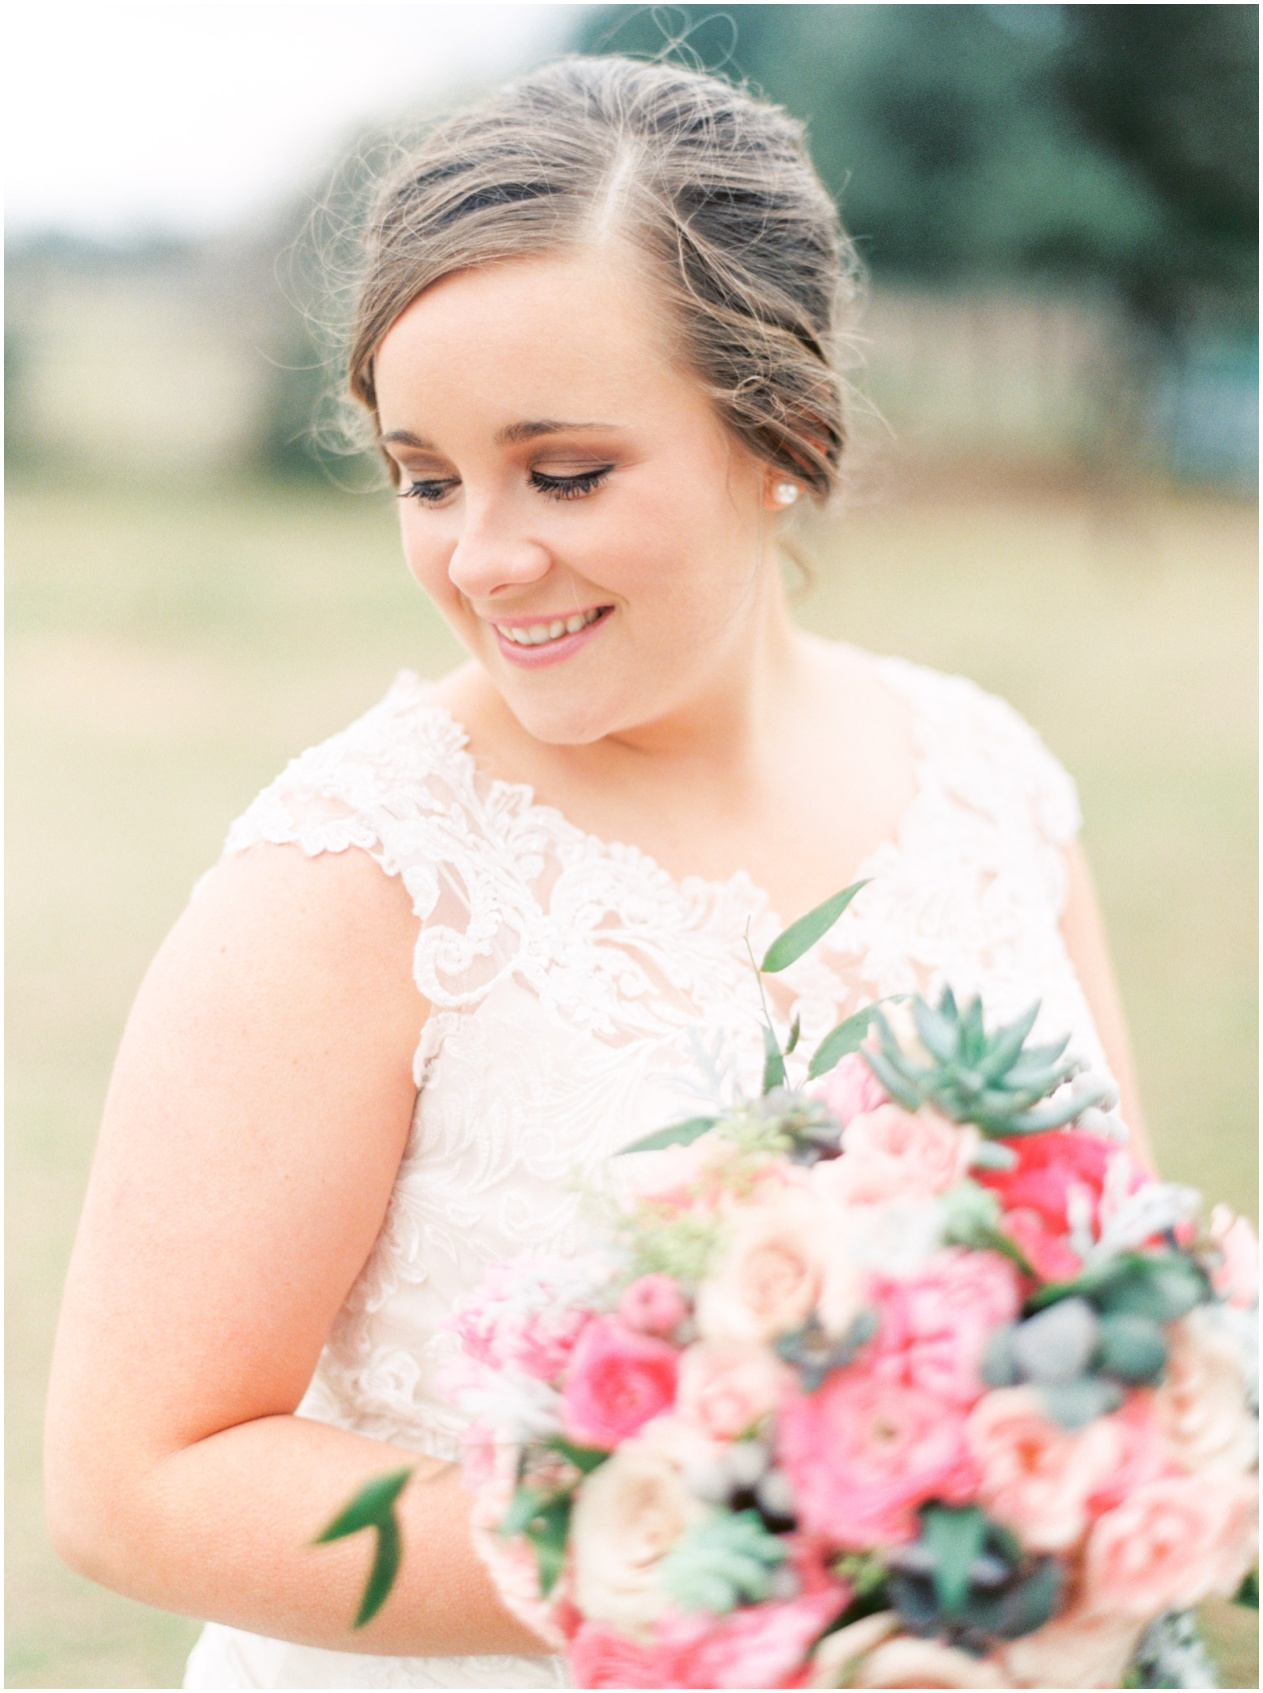 Sarah Best Photography - Claire's Bridals - The Amish Barn at Edge-24_STP.jpg